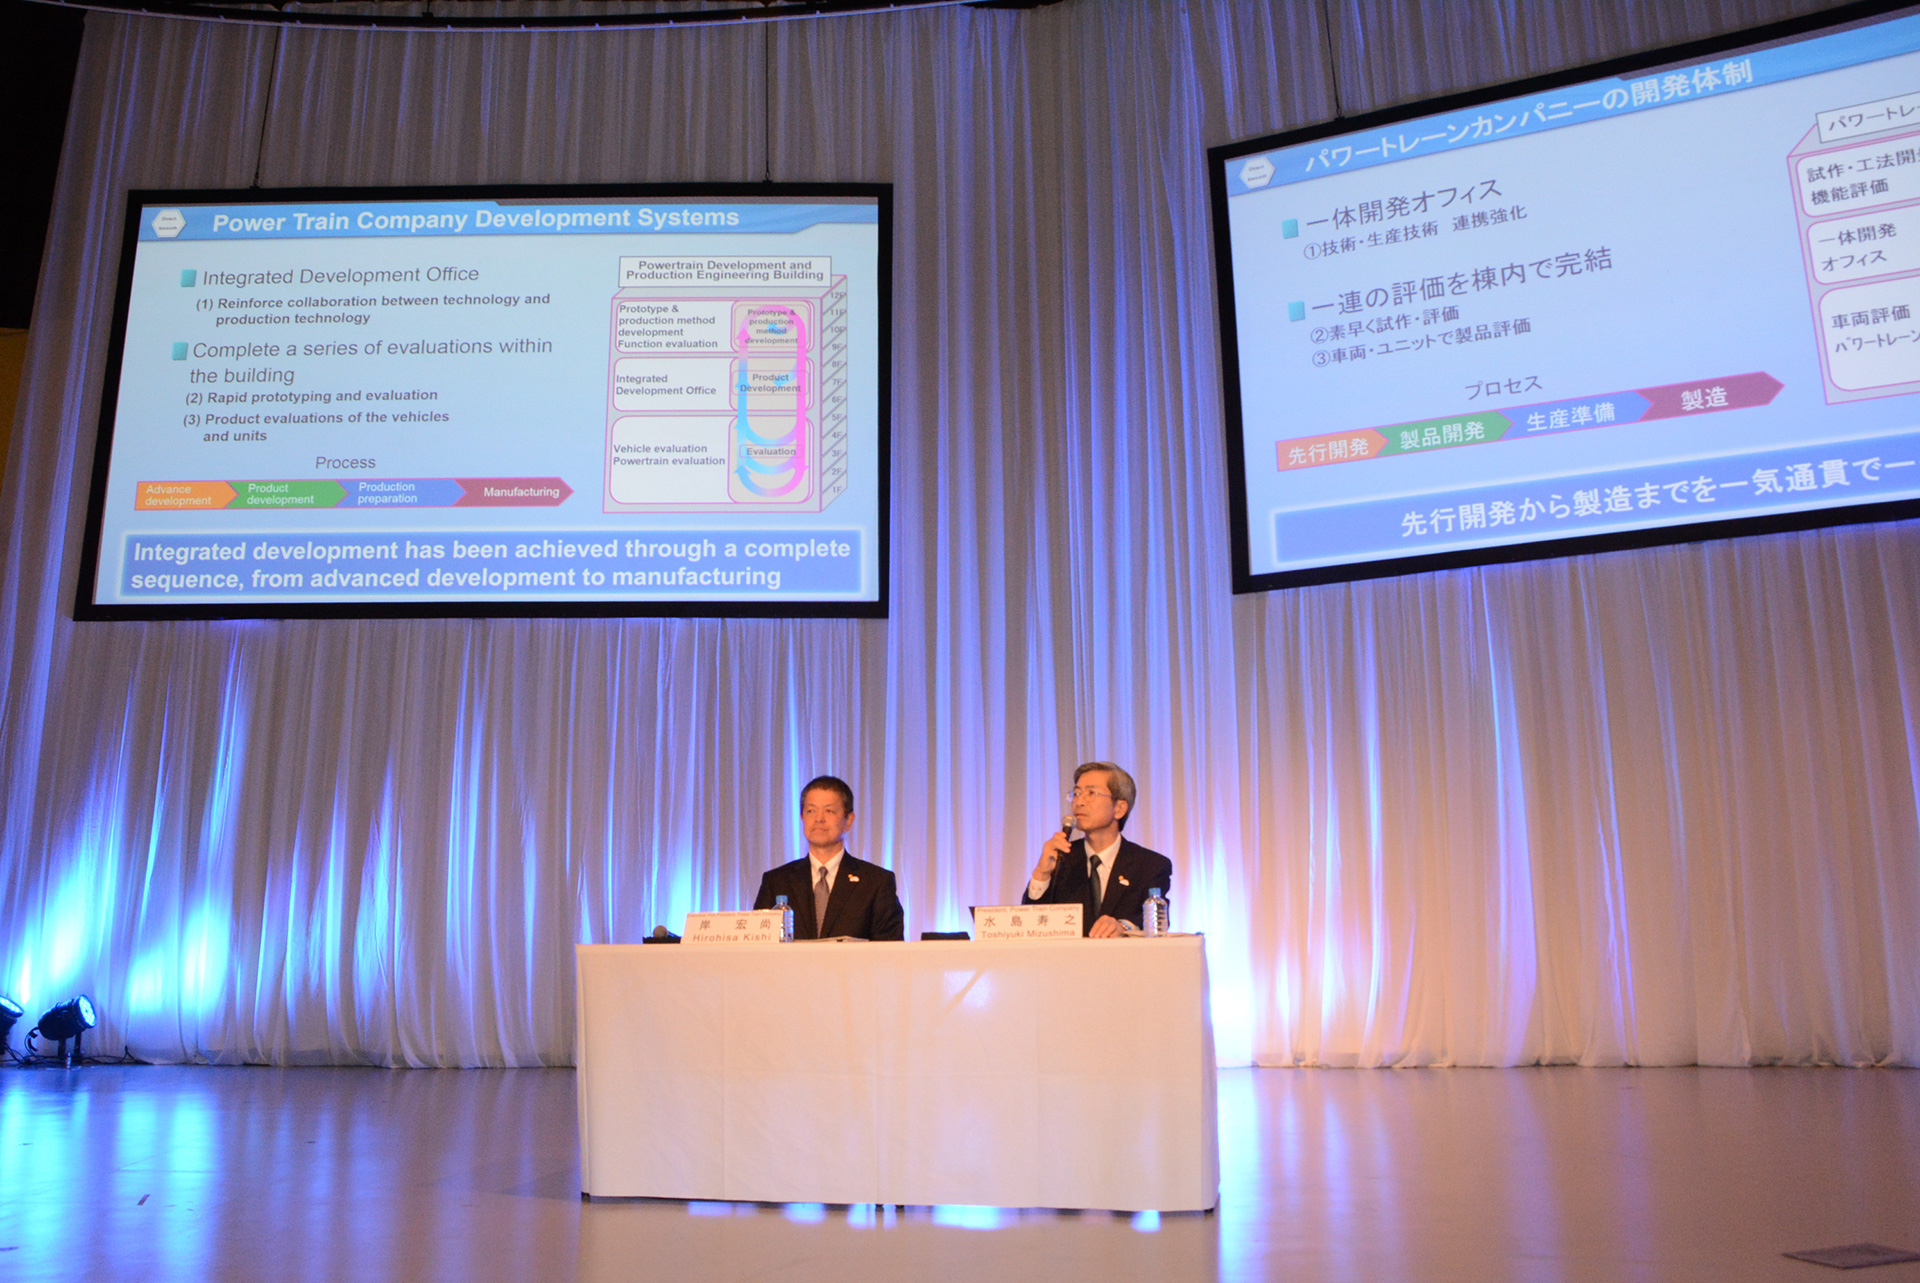 Press Briefing on Toyota's Power Train Technology